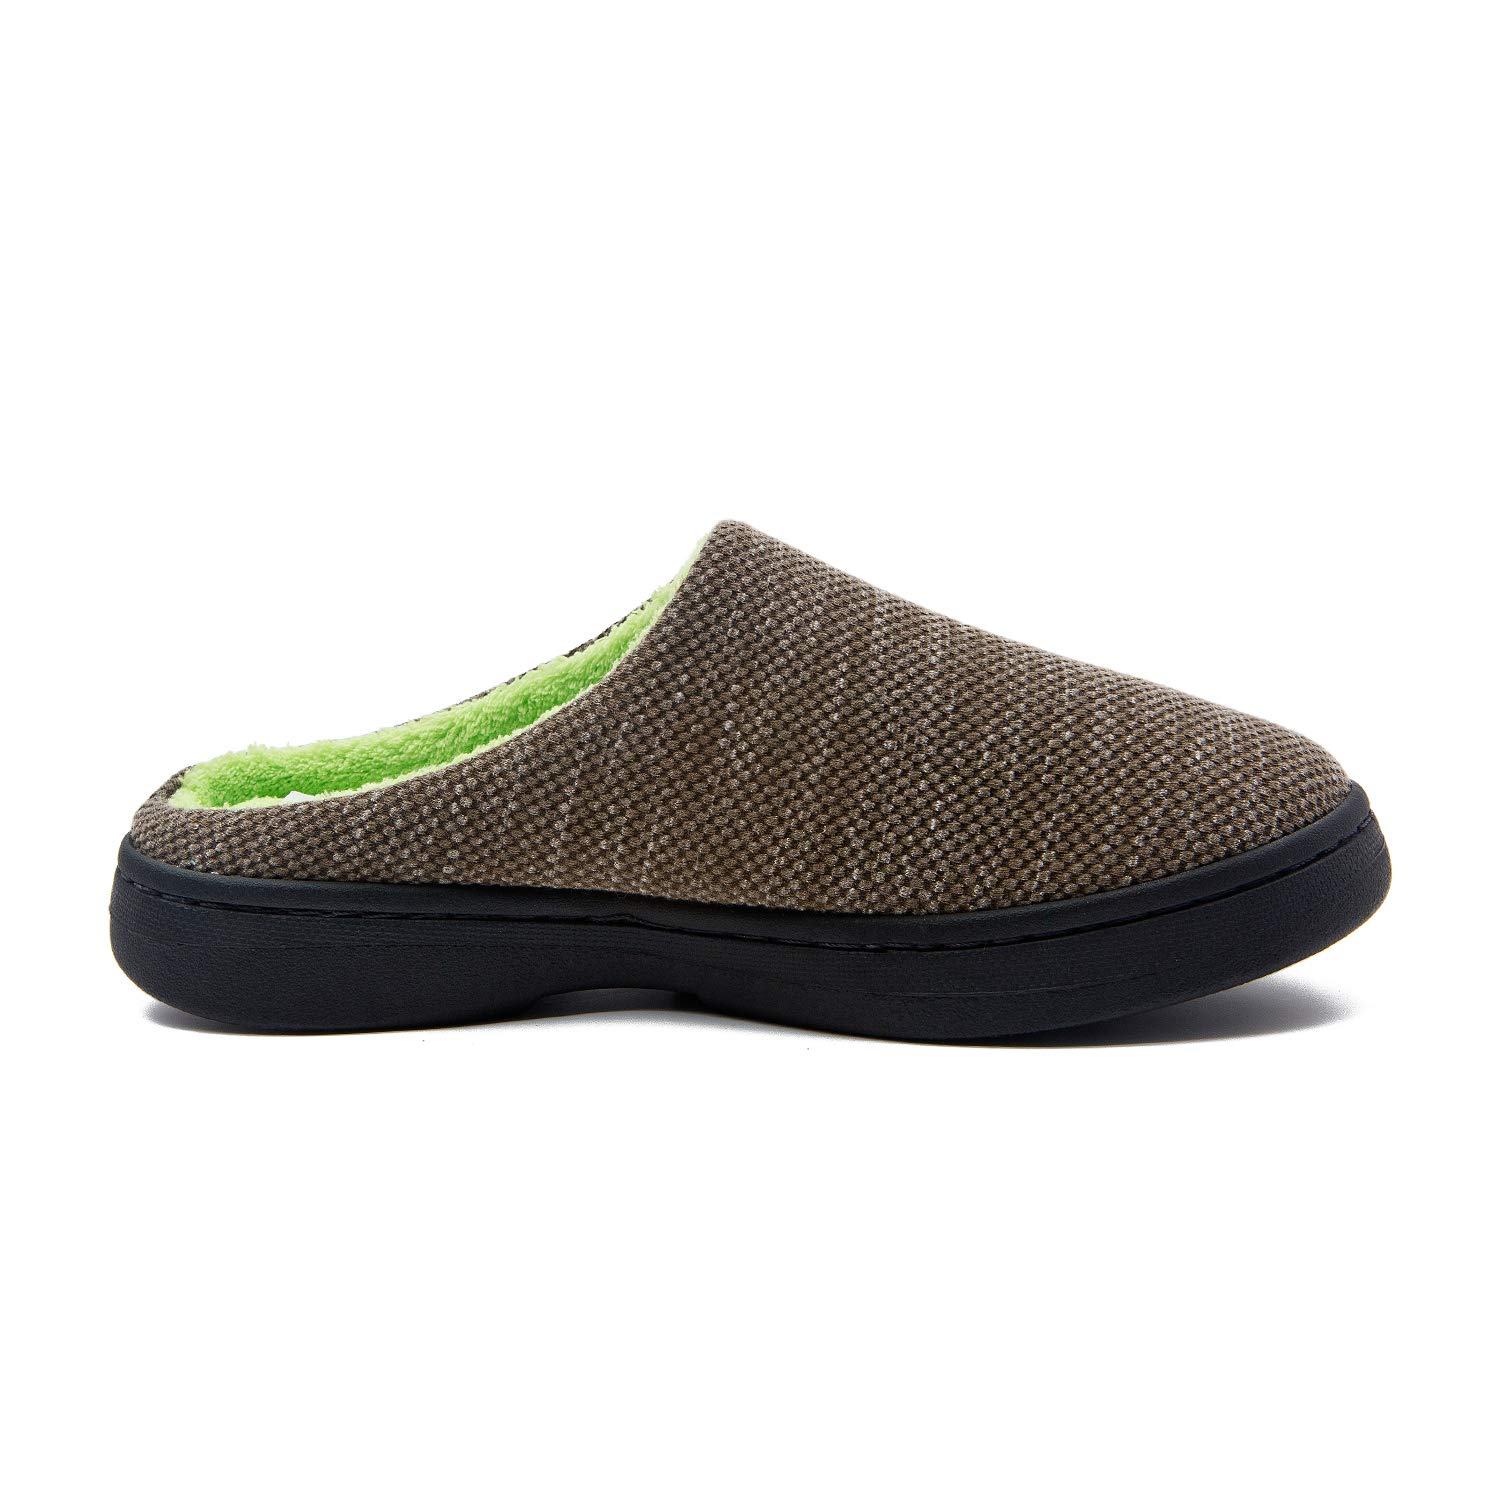 Slippers for Men Memory Foam Warm Cozy Slip On Home House Shoes Rubber Sole Non-Slip Indoor Outdoor Winter (7-8, Army Green/Emerald)